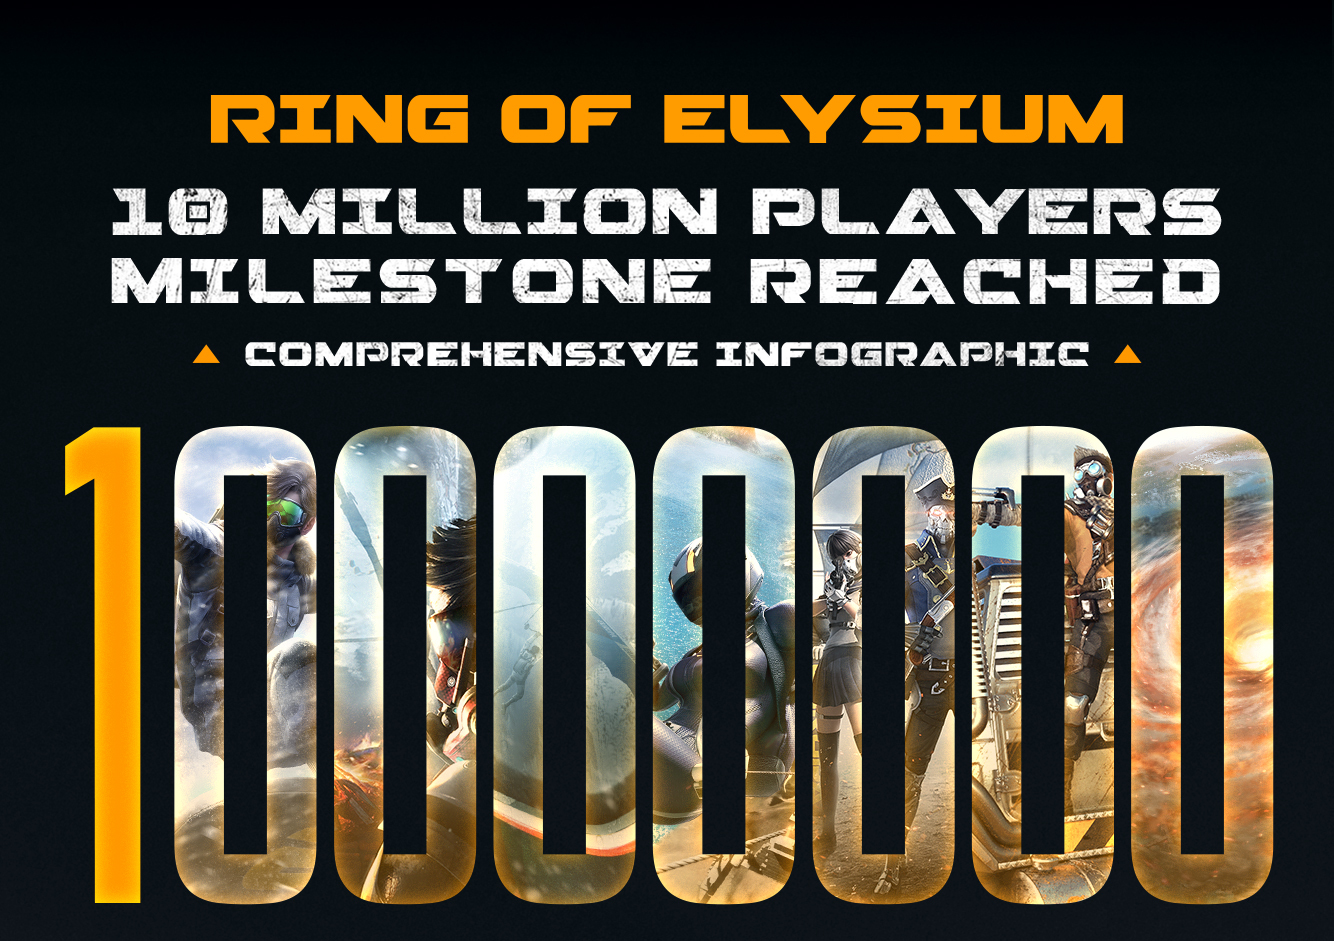 Steam Community :: Ring of Elysium